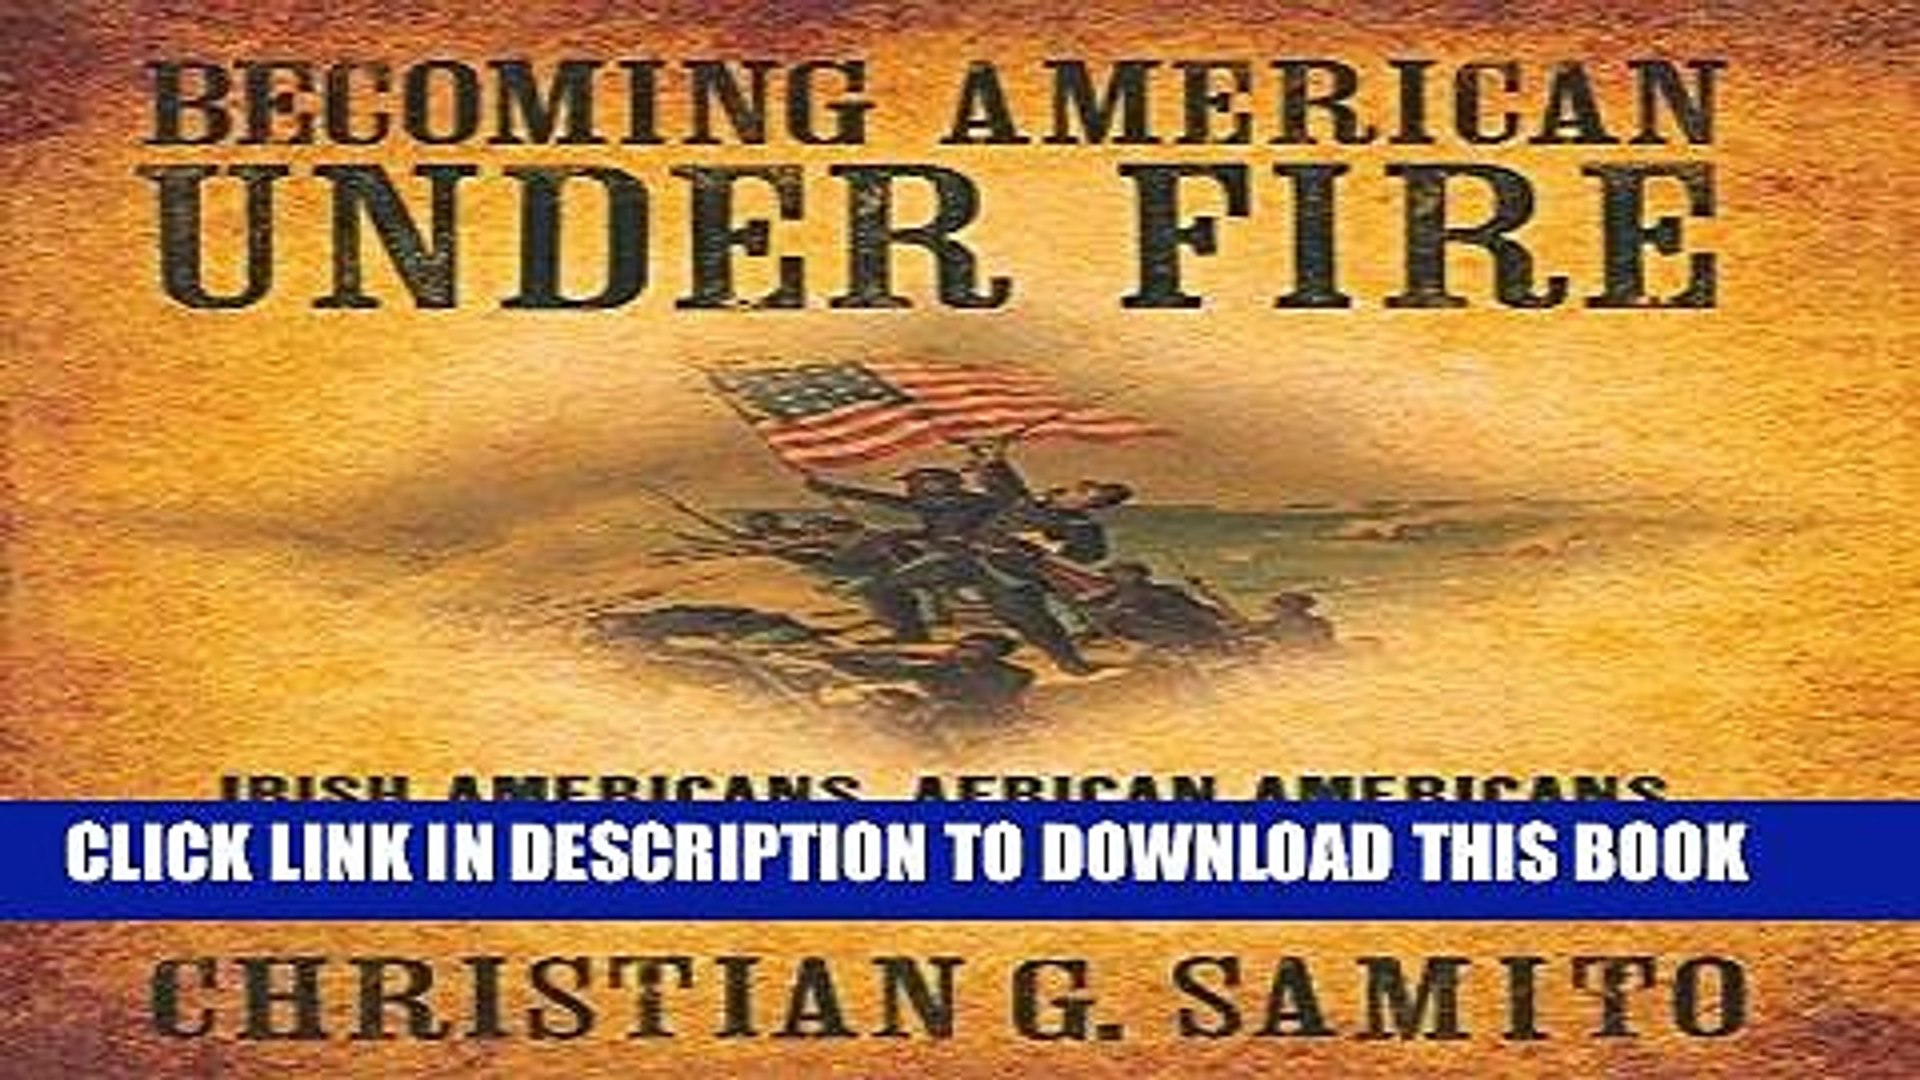 Read Now Becoming American Under Fire: Irish Americans, African Americans, and the Politics of